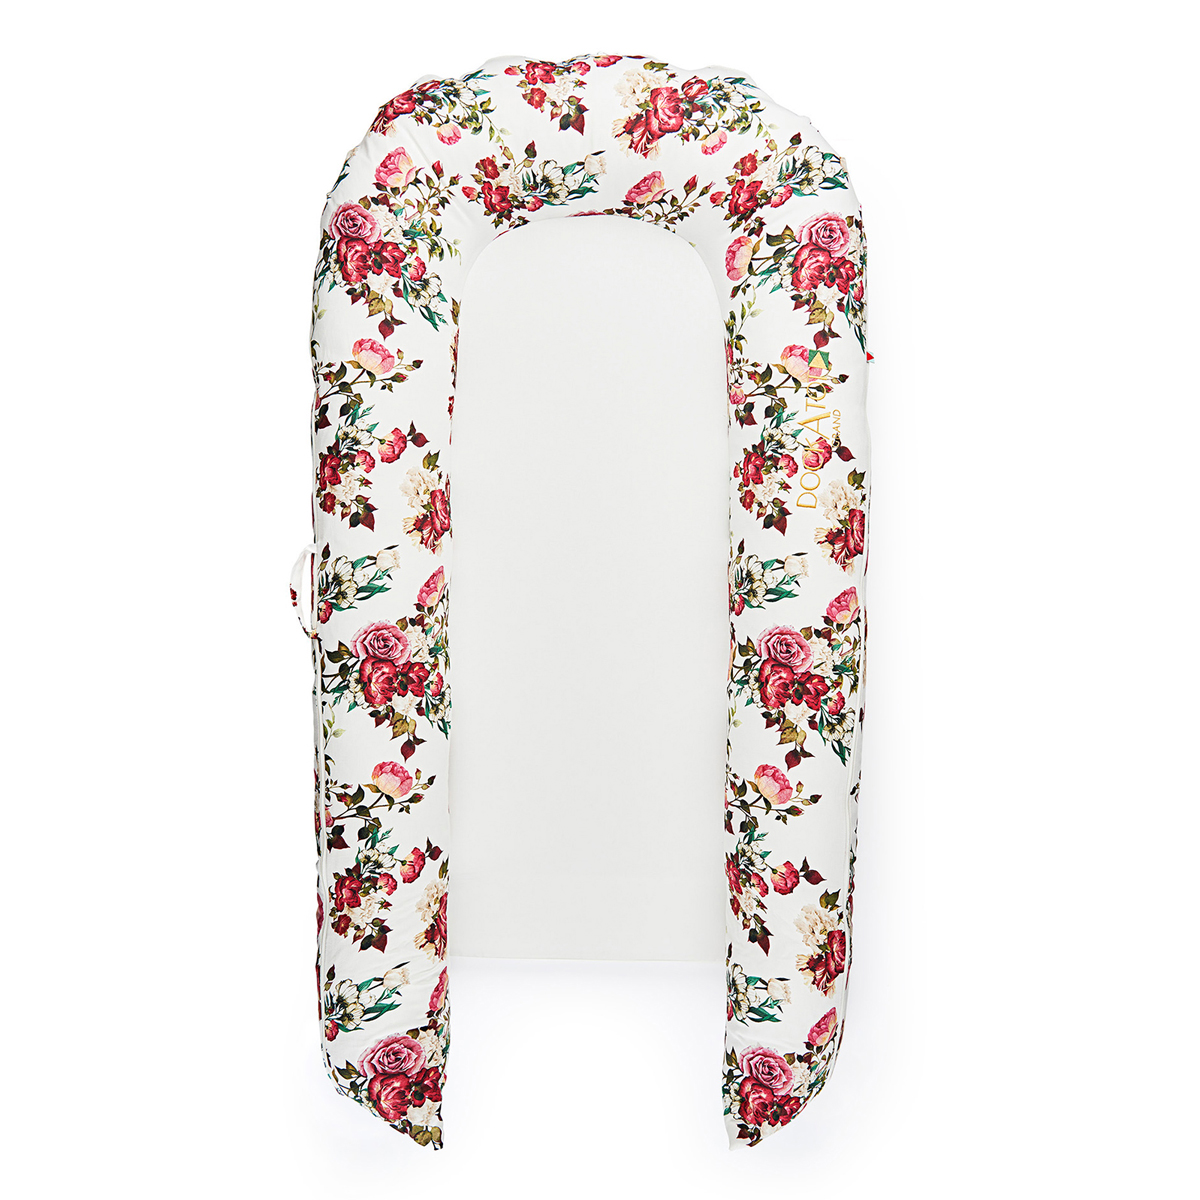 DockATot Grand Cover in La Vie En Rose Floral Print